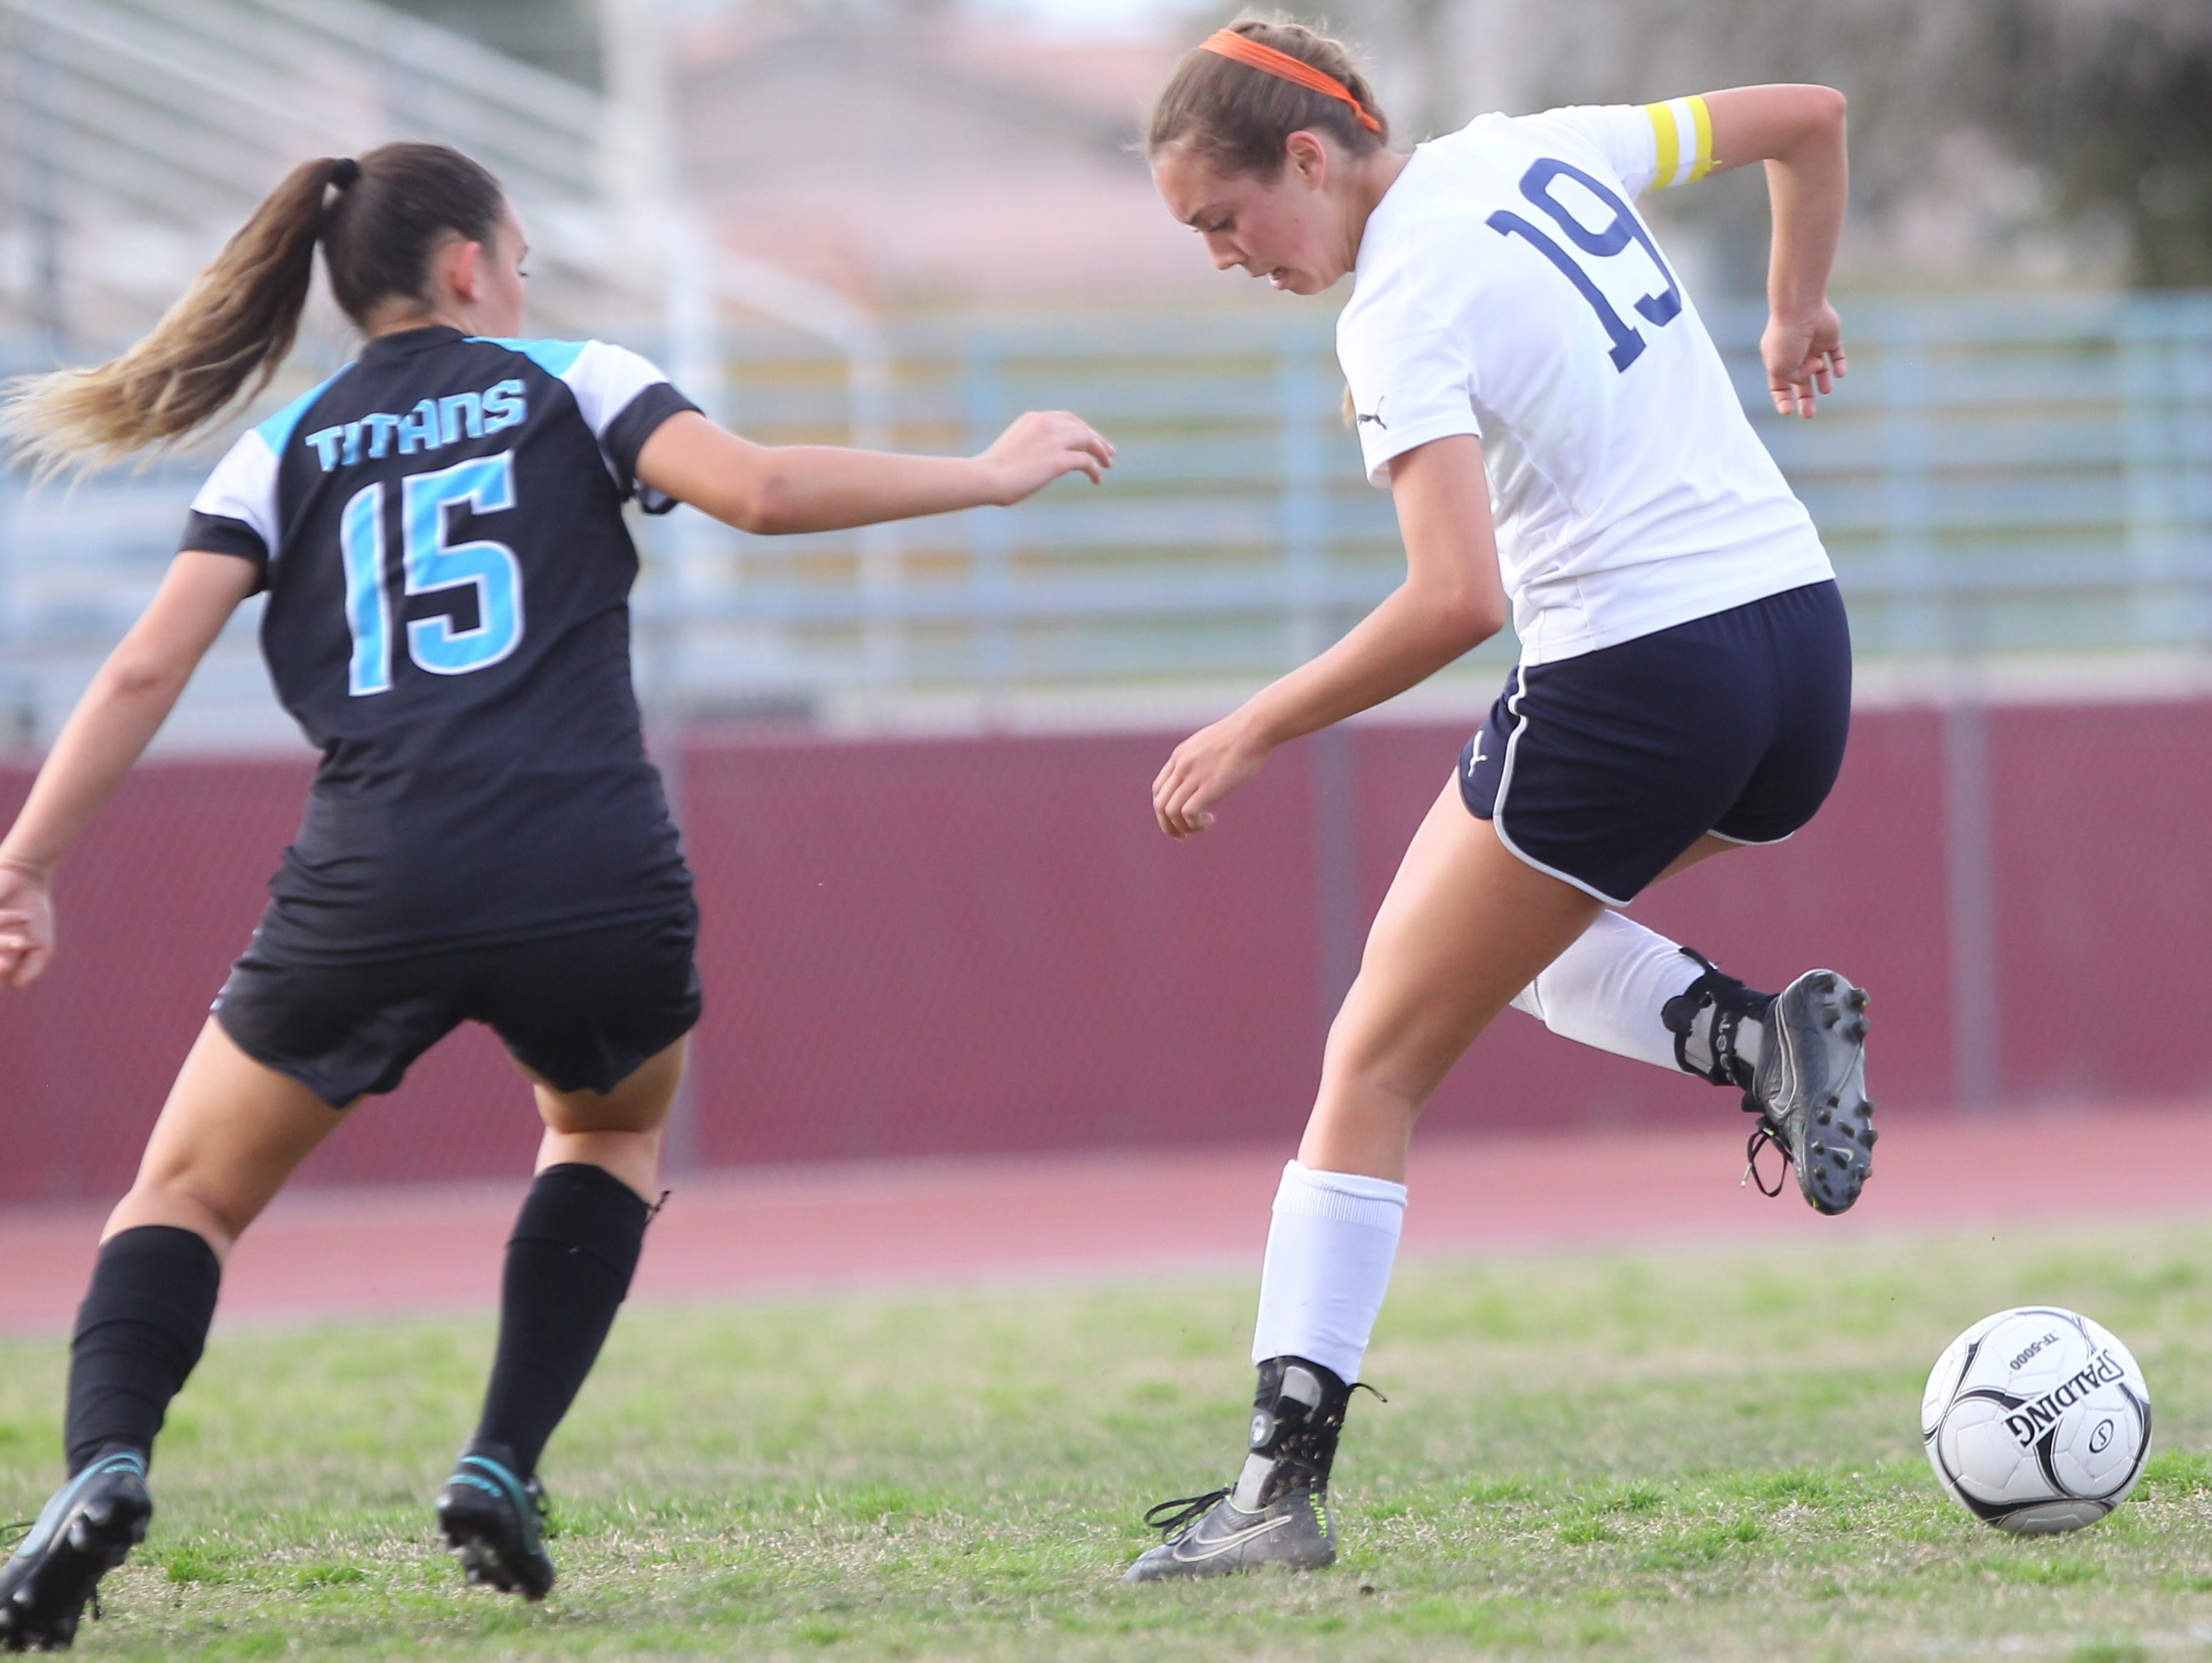 La Quinta High School's Jaylene Manion back heels the ball away from a Grand Terrace High School player at La Quinta on February 16, 2017. La Quinta won 2-1.